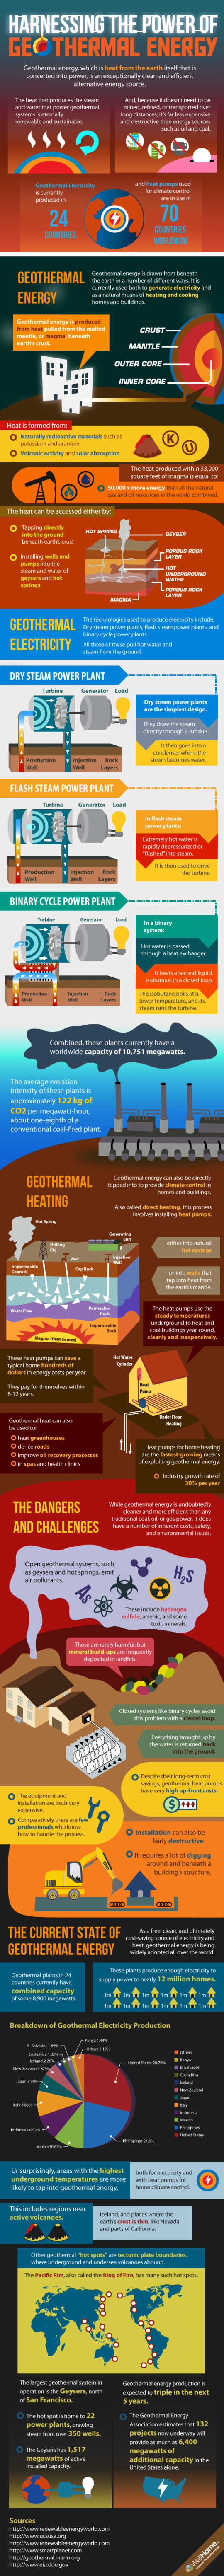 Harnessing the Power of Geothermal Energy